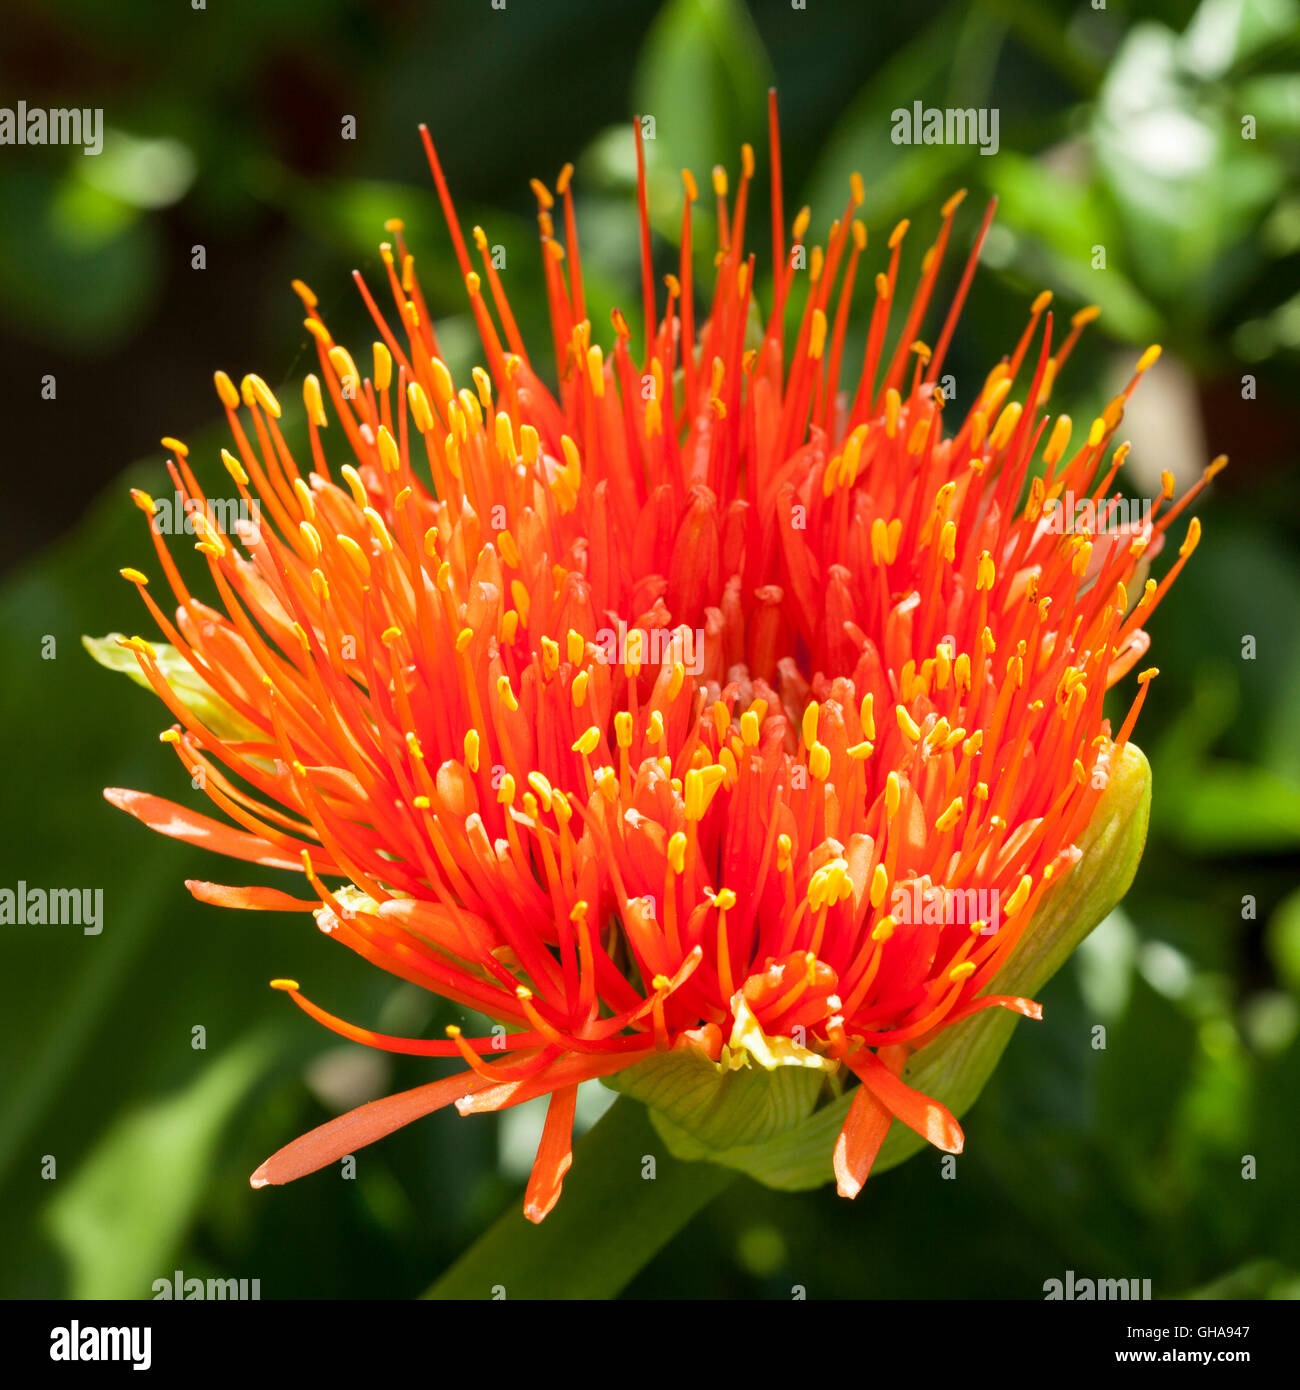 botany, Feuerball-Blume (Haemanthus multiflorus), Additional-Rights-Clearance-Info-Not-Available - Stock Image